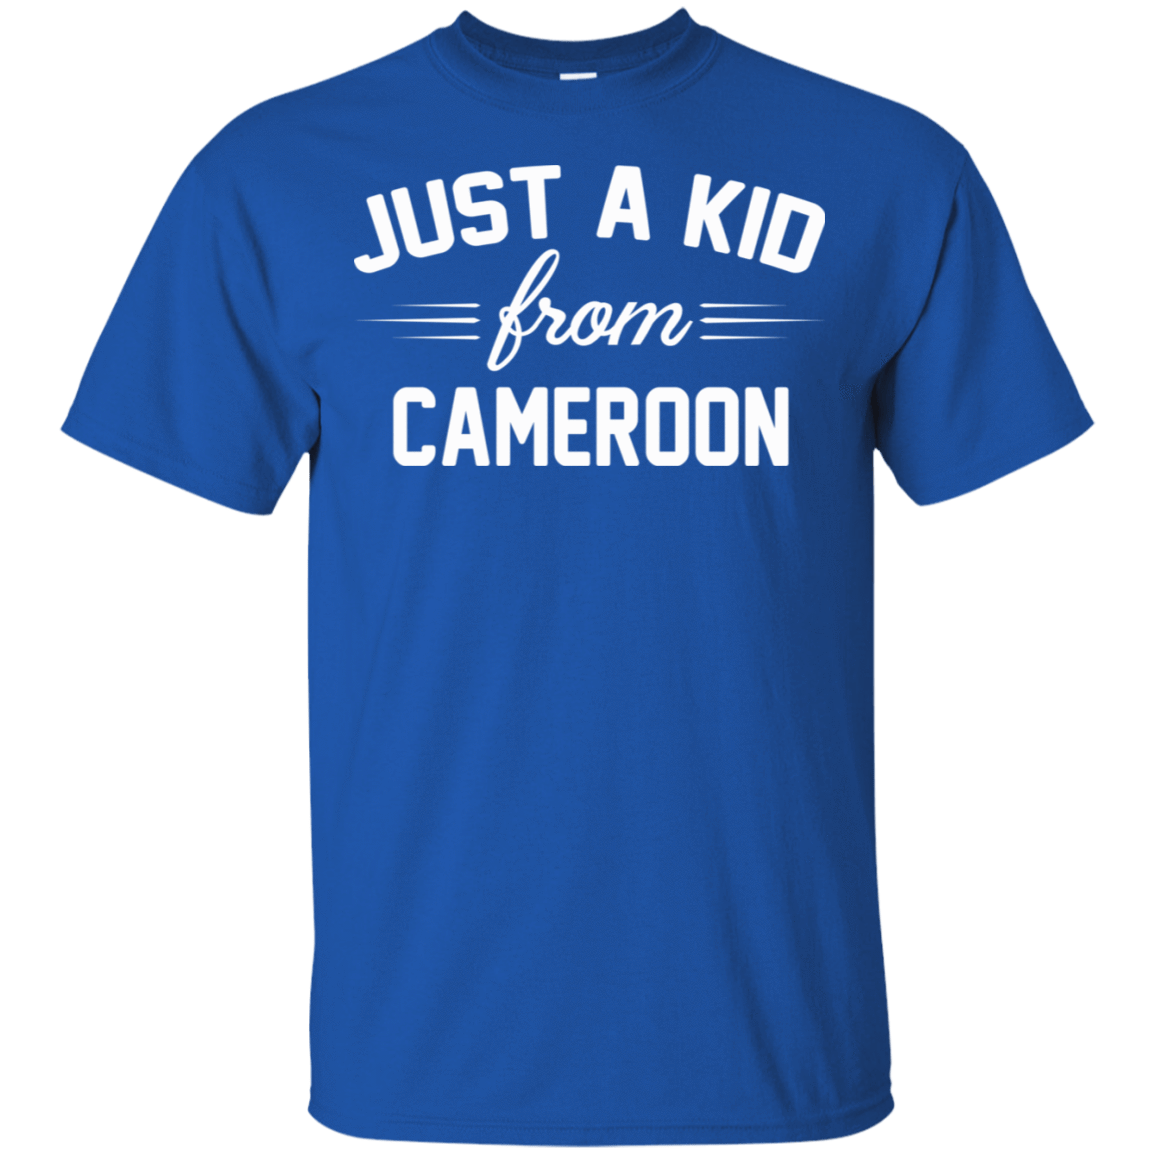 Just a Kid Store | Cameroon T-Shirts, Hoodie, Tank 22-110-72092768-249 - Tee Ript